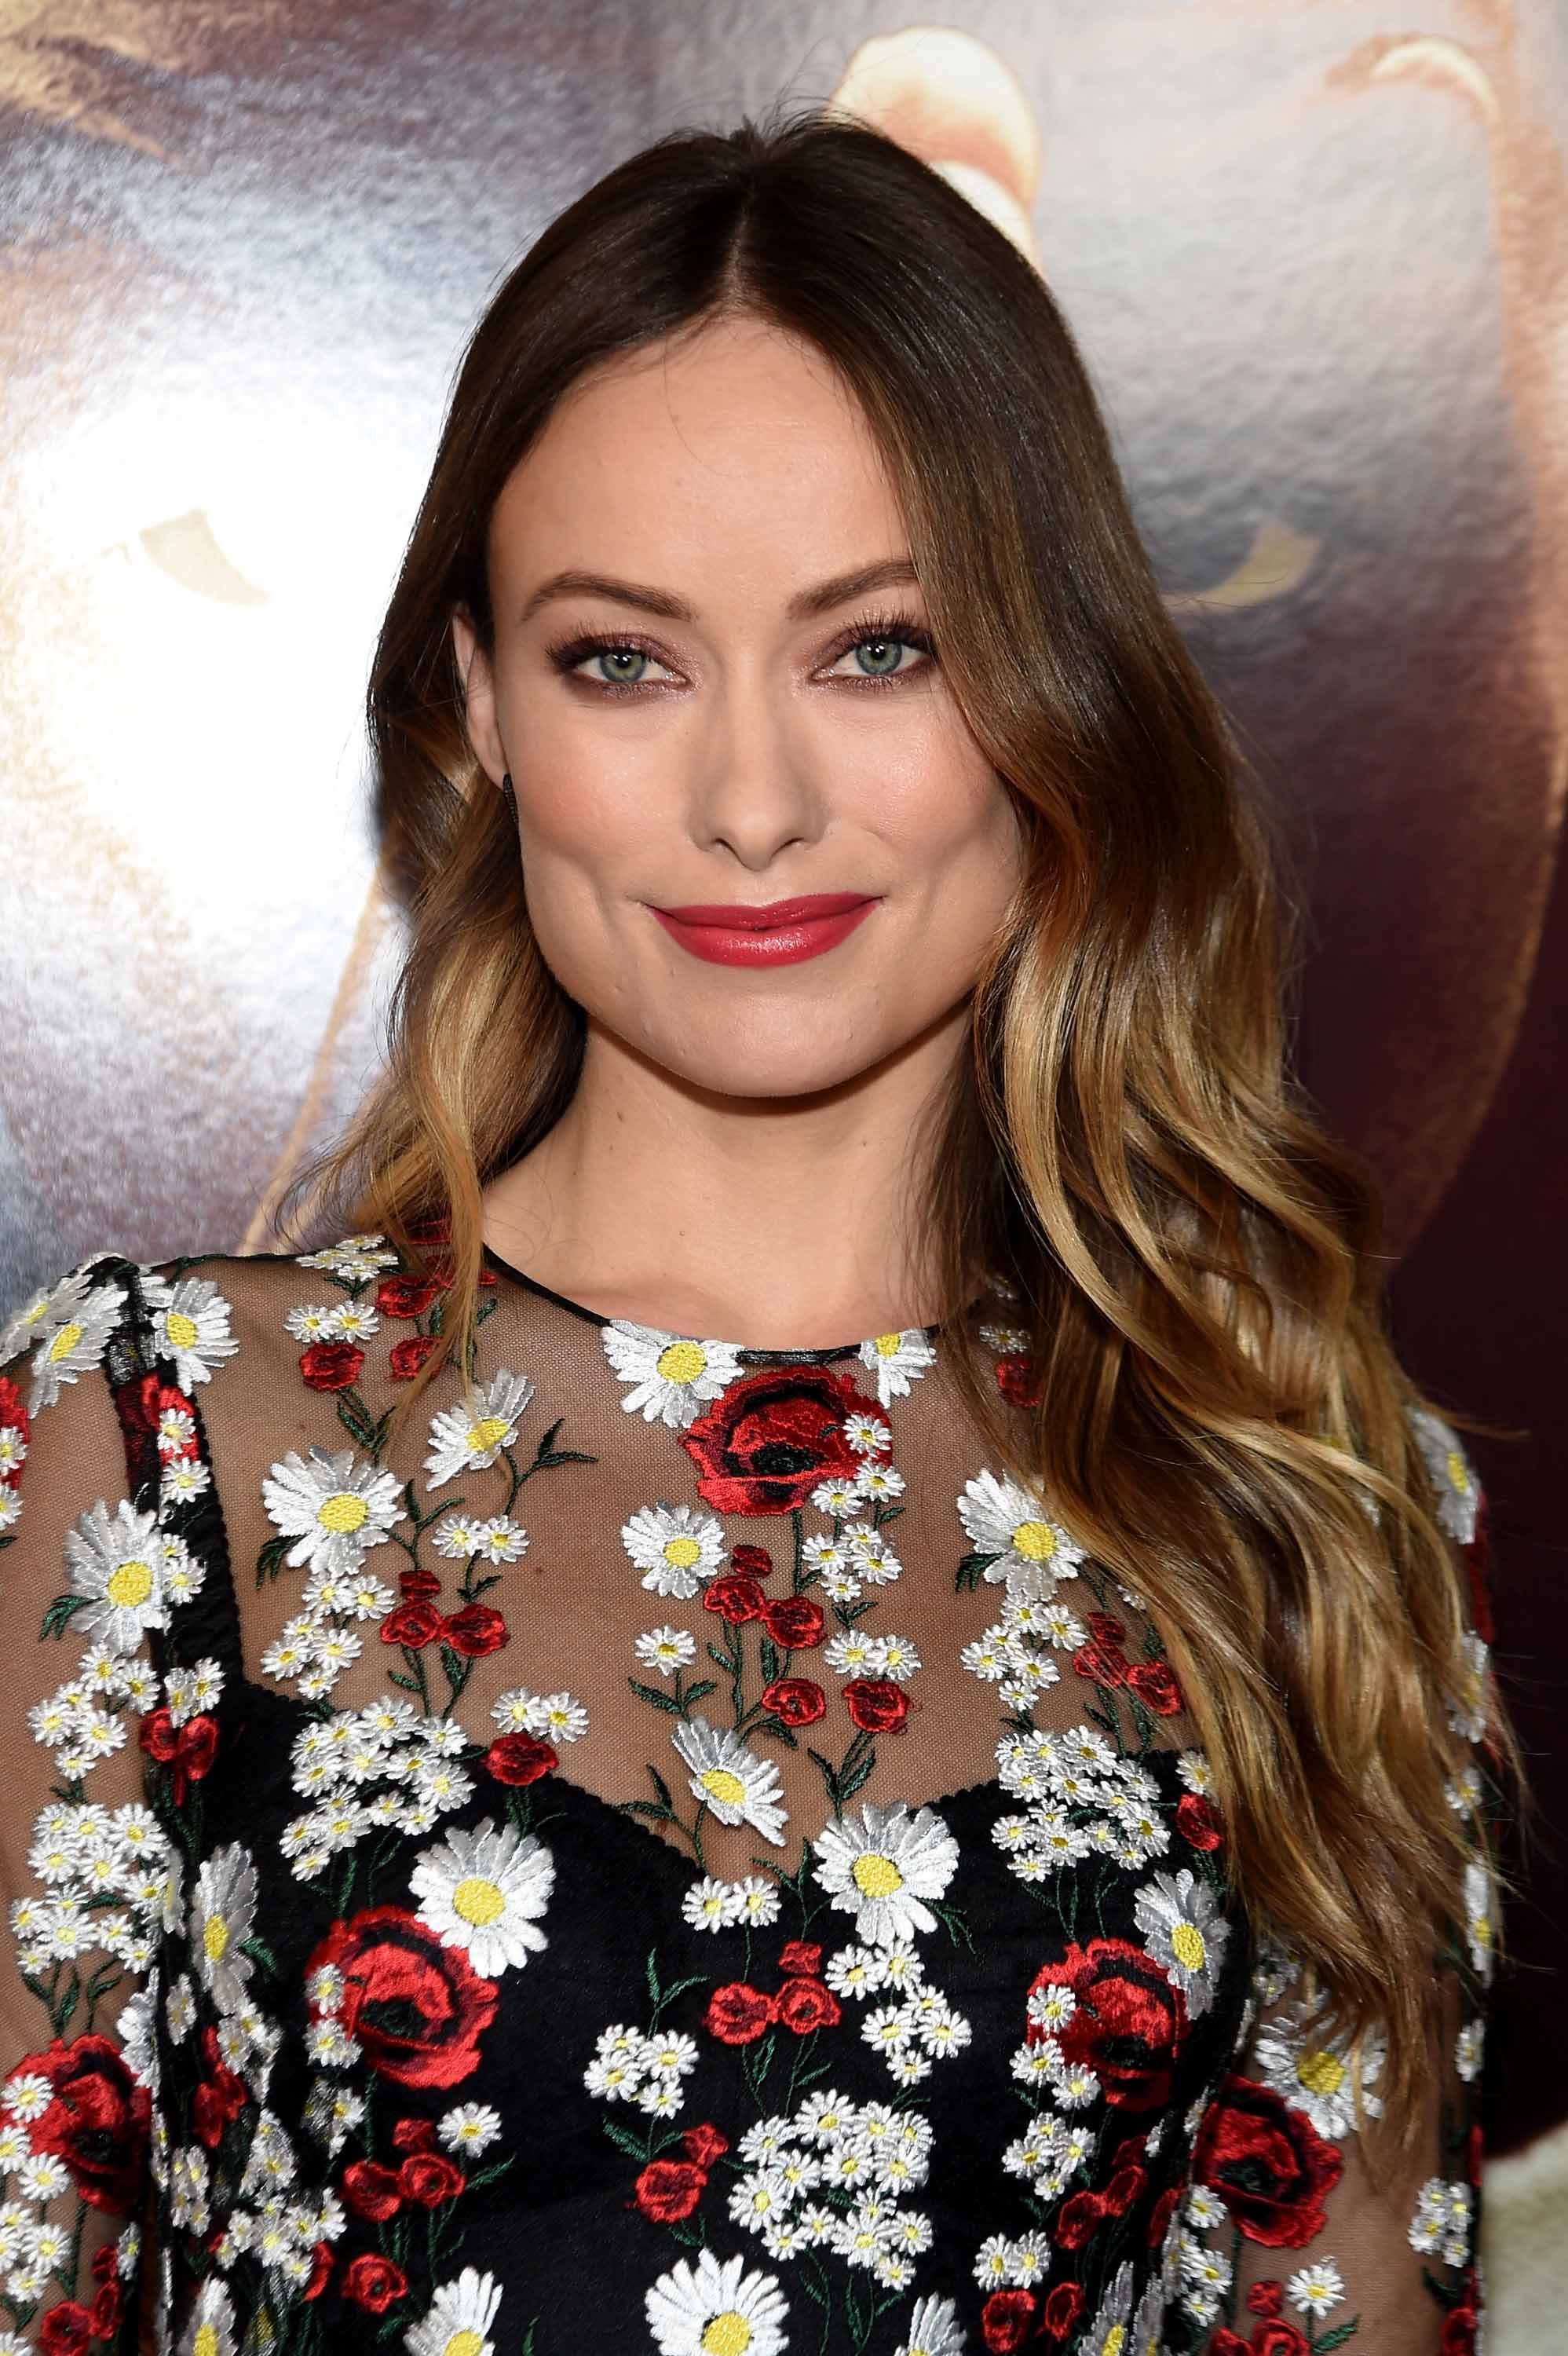 Brown hair with highlights: Olivia Wilde with subtle blonde highlights on brown hair wearing a floral dress